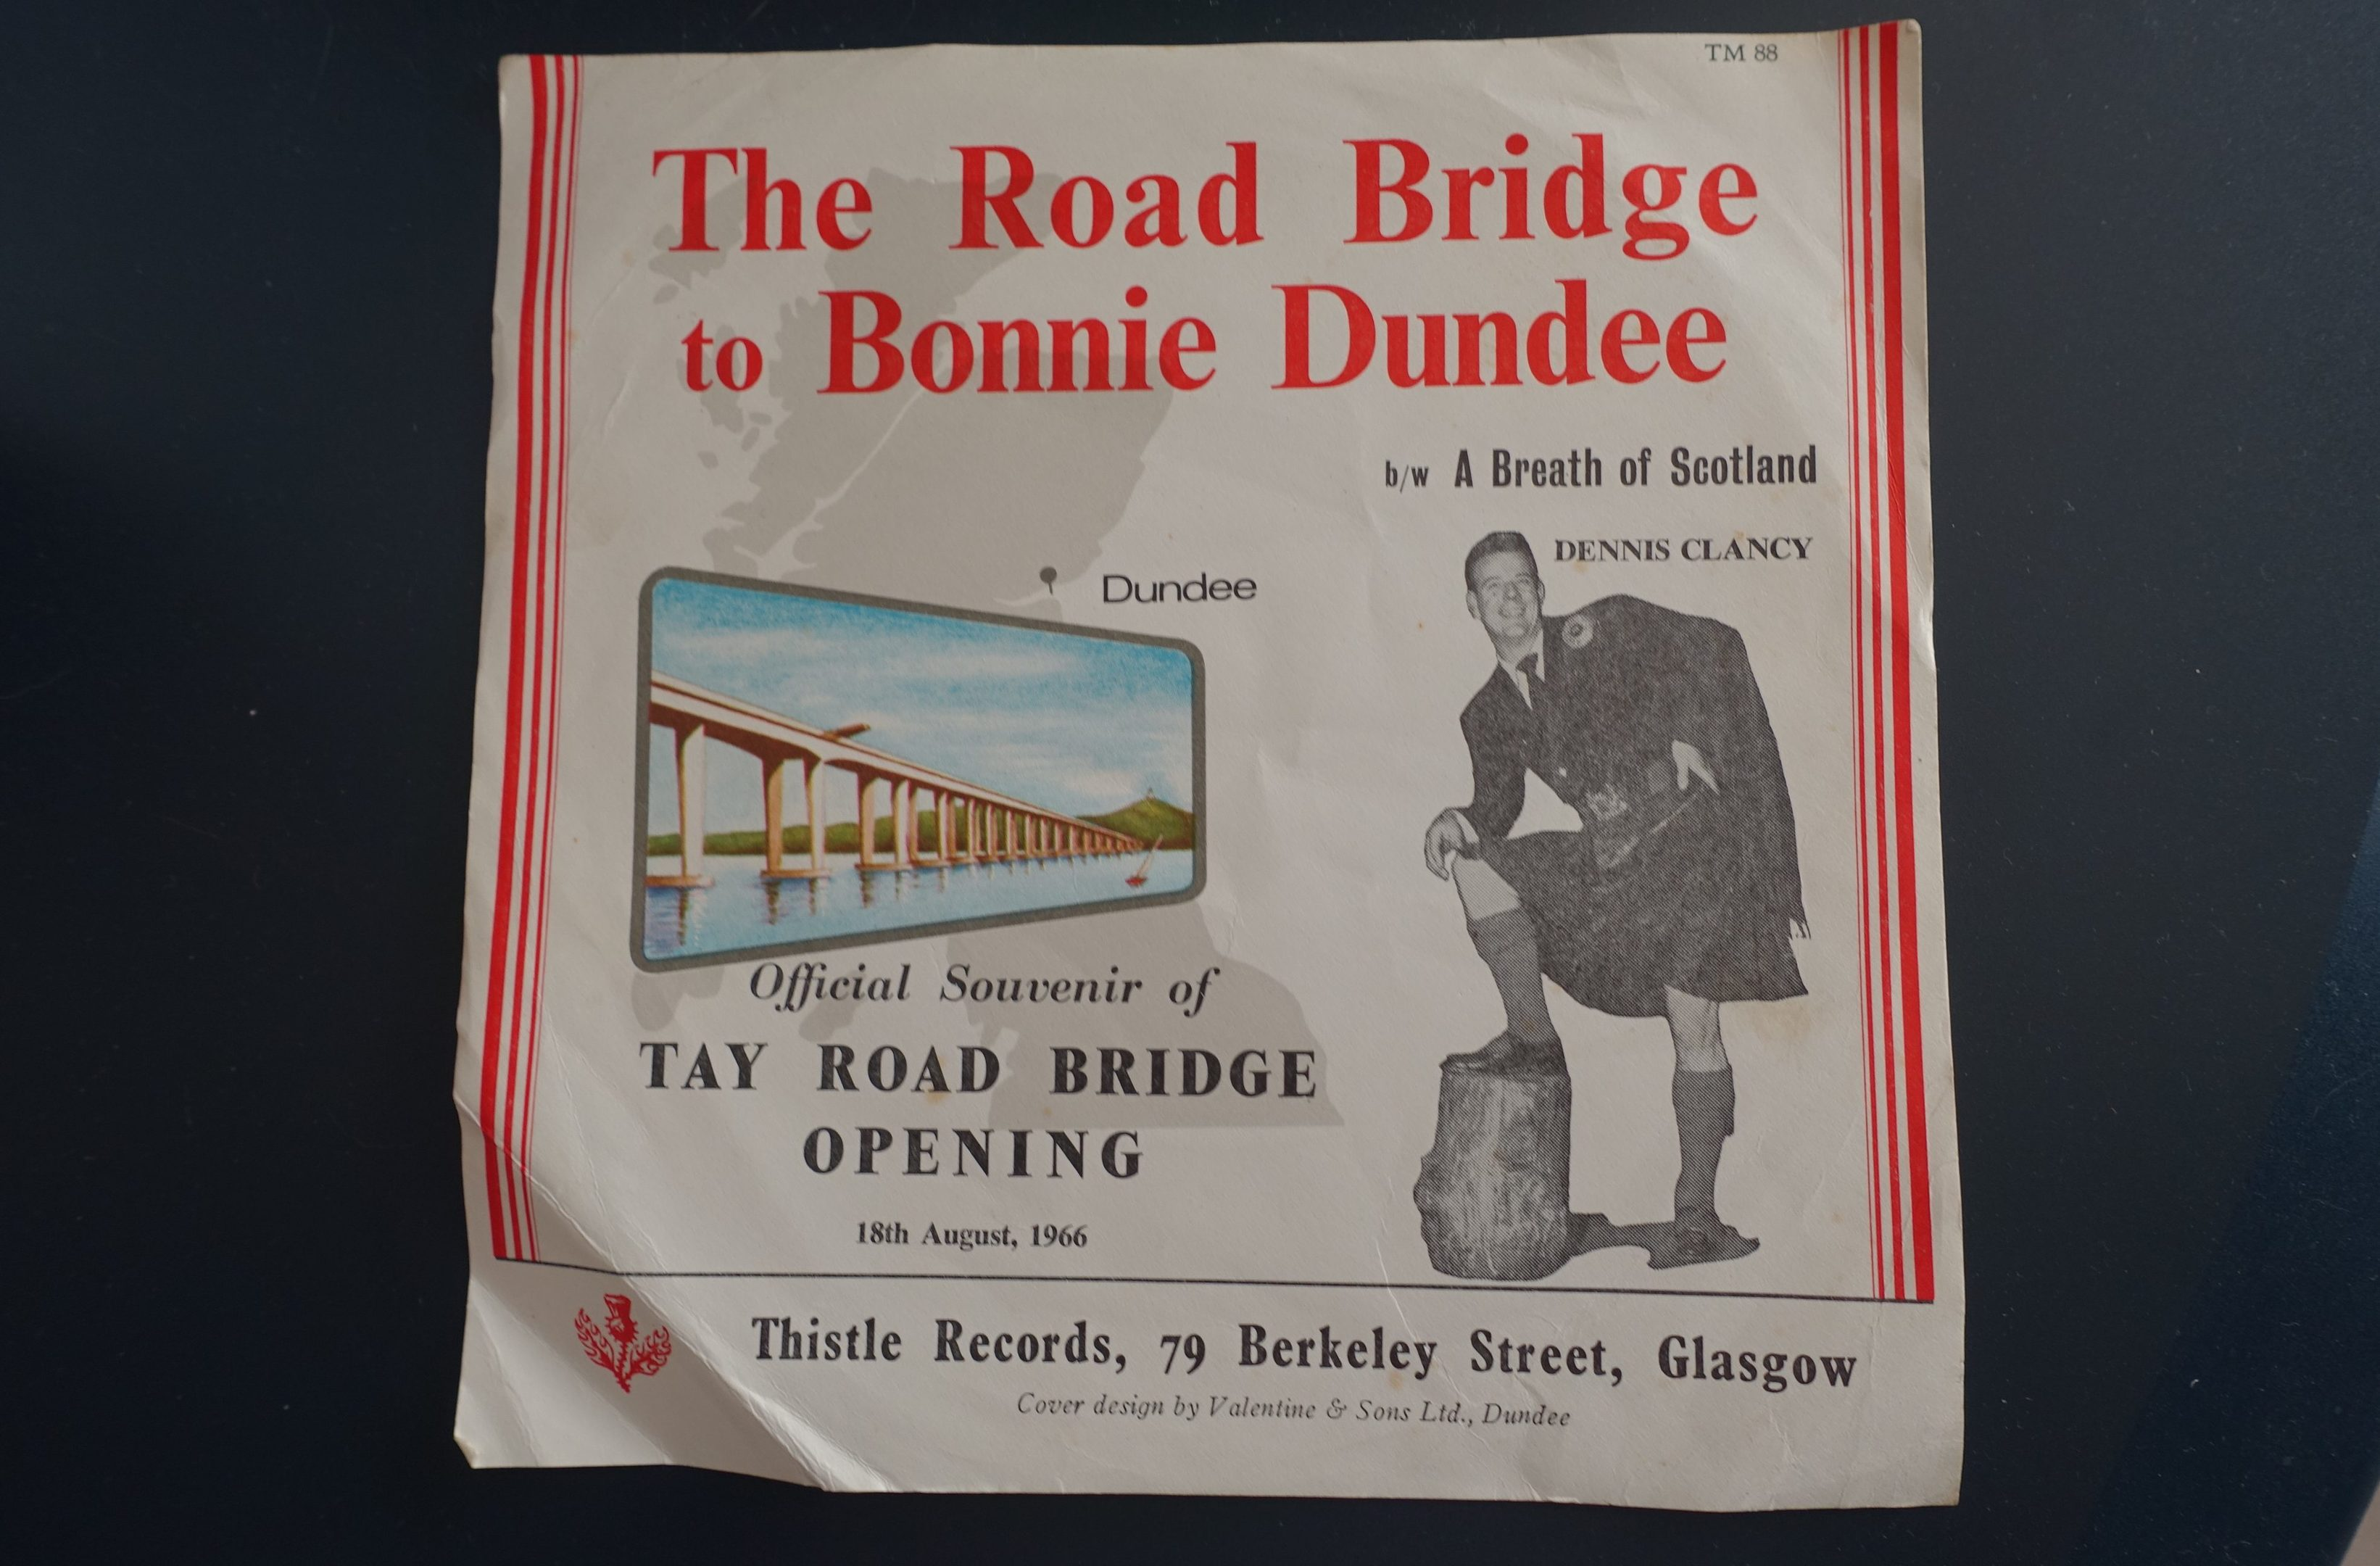 The Road Bridge to Bonnie Dundee was written to commemorate the opening of the Tay Road Bridge on August 18, 1966